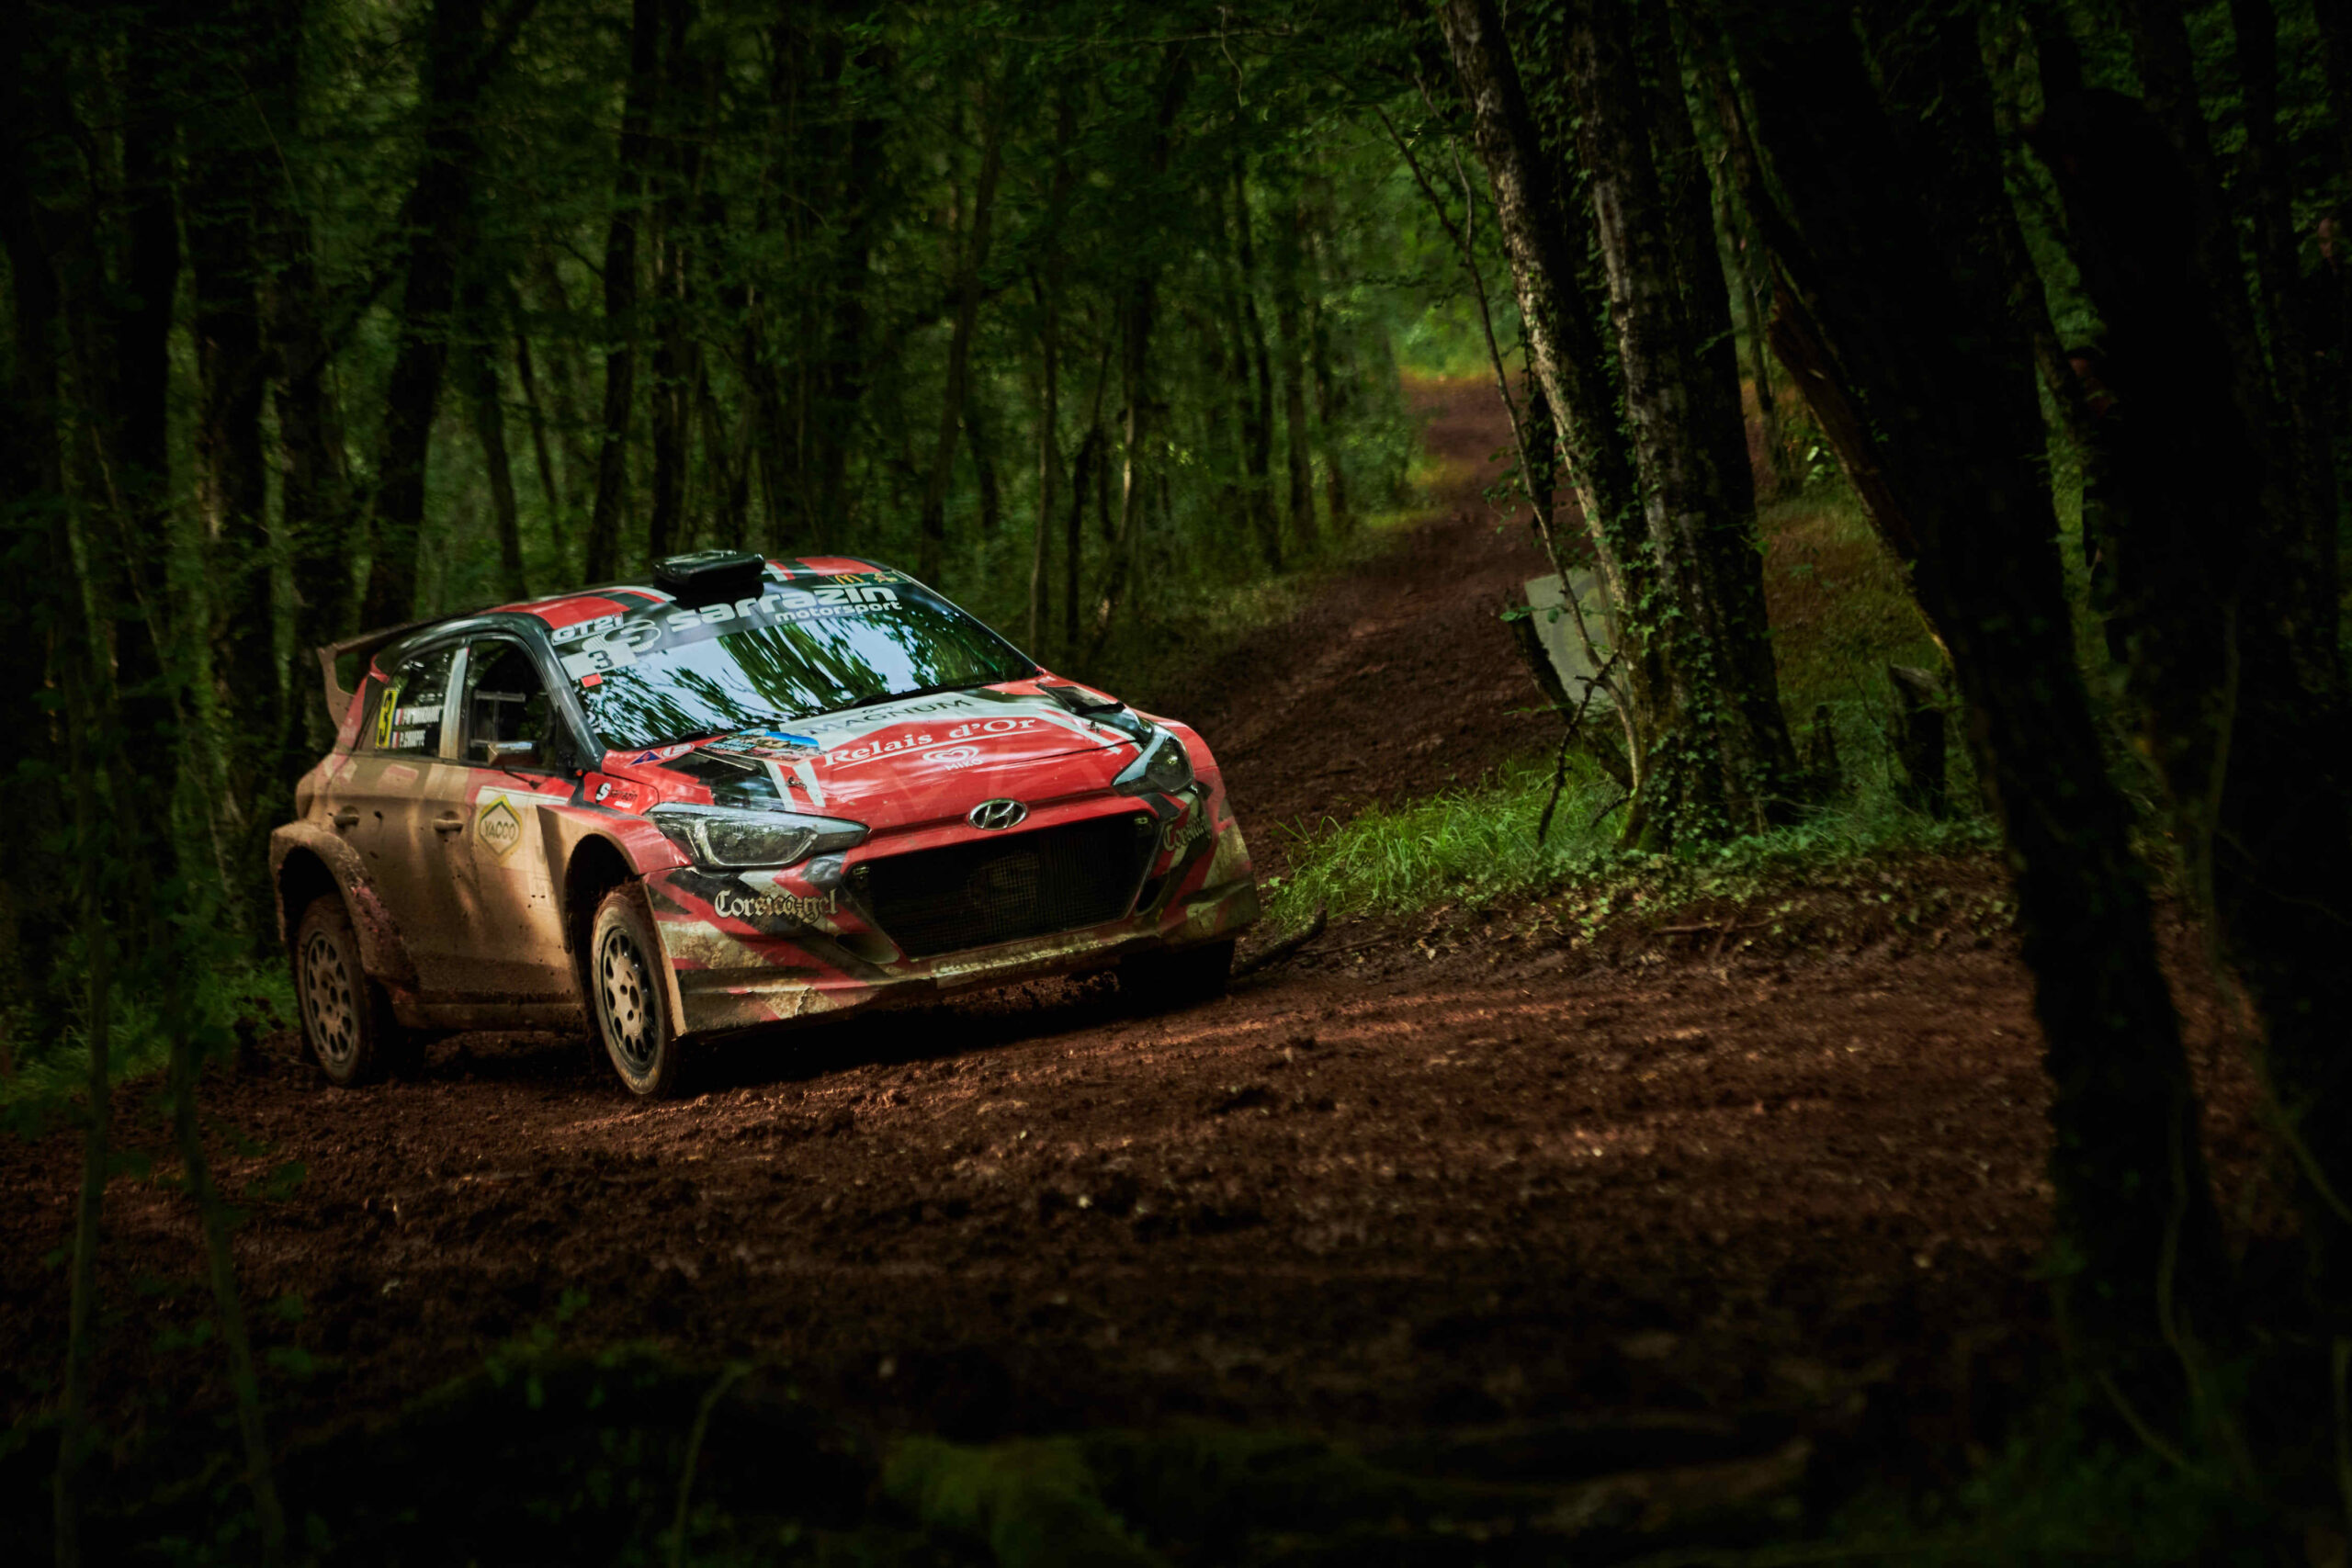 Double podium for i20 R5 runners on French gravel